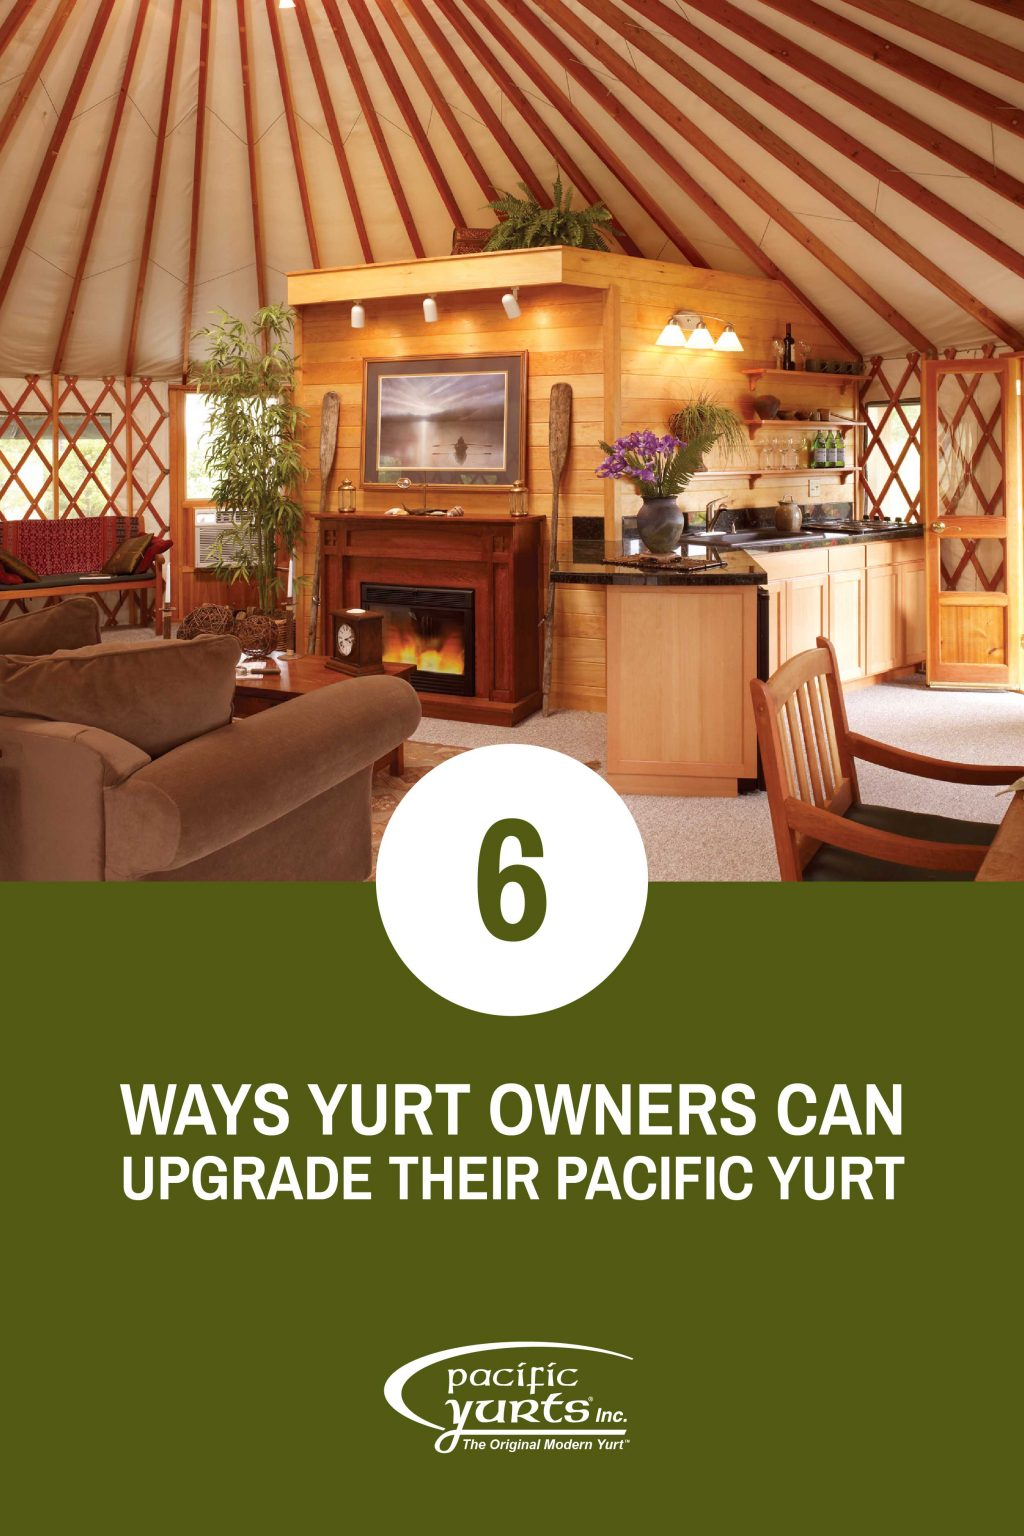 6 ways yurt owners can upgrade their pacific yurt